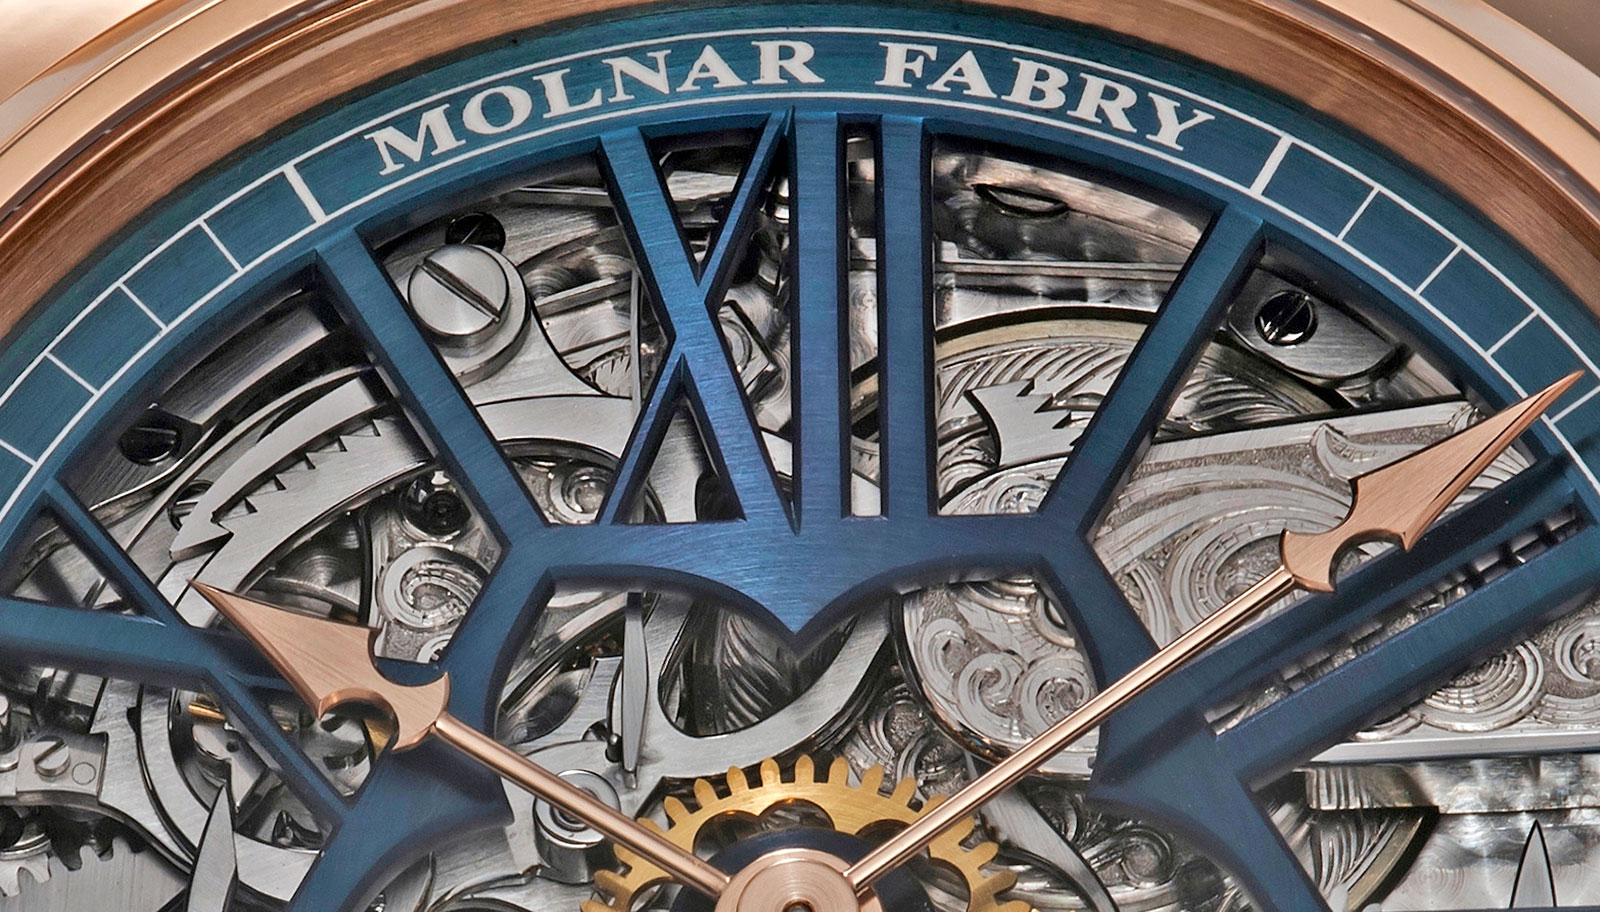 Molnar Fabry Nightingale Repeater